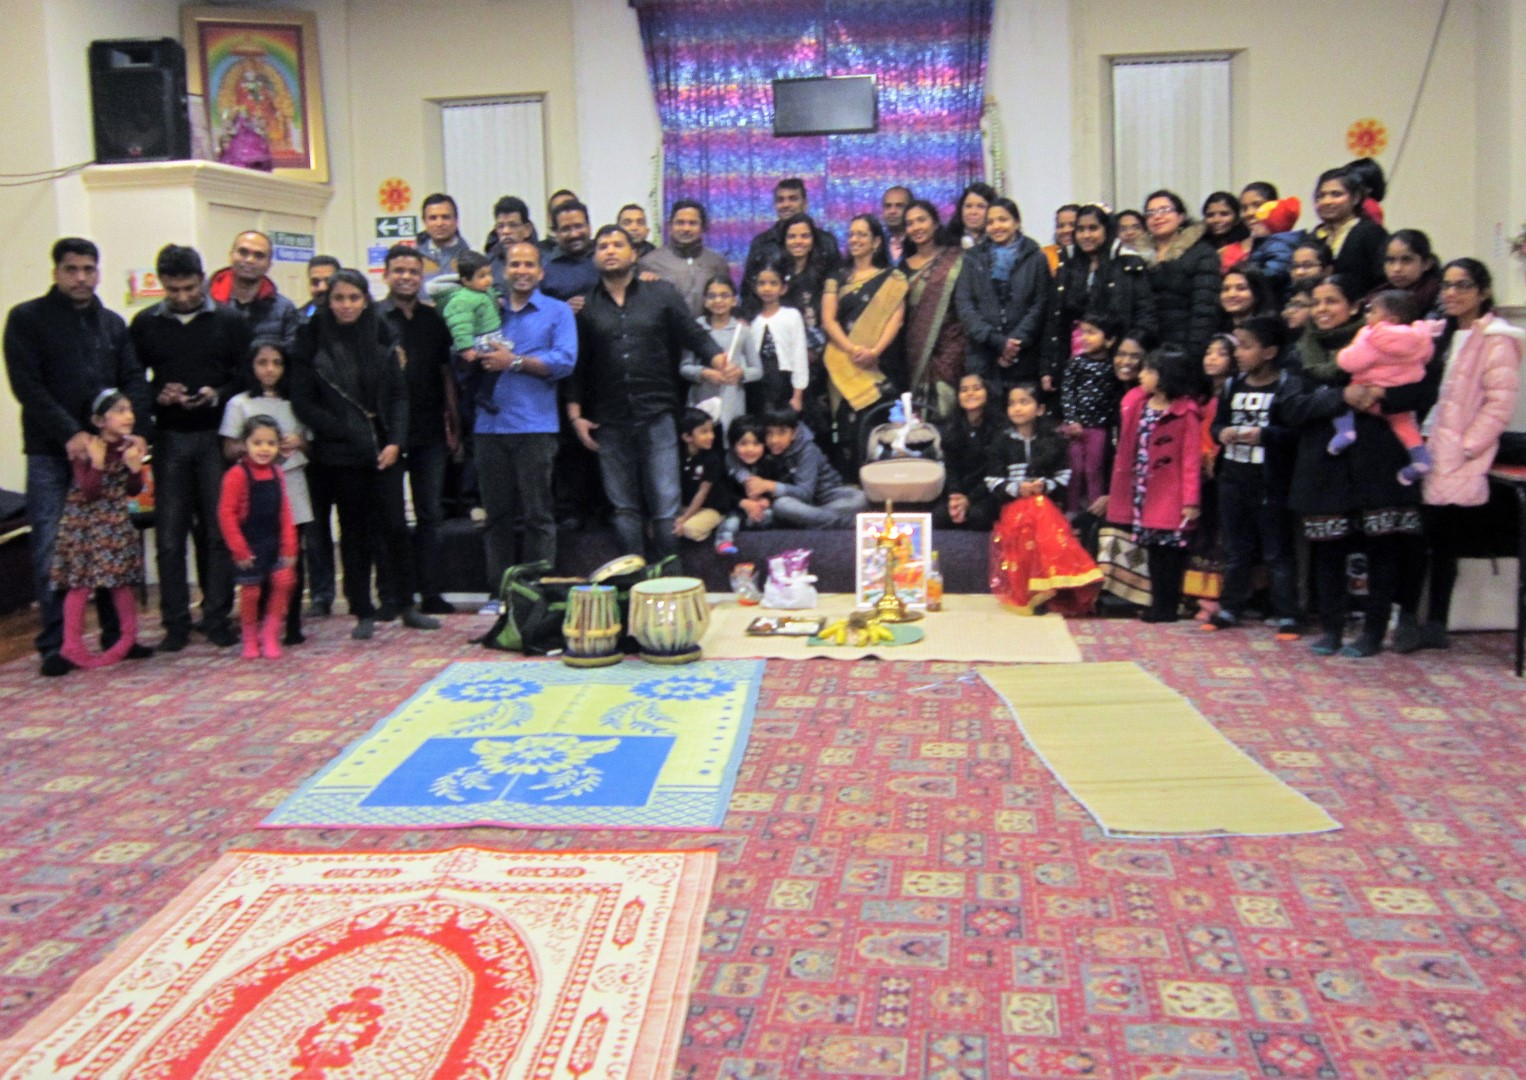 Tens of Hindus stand around colourful mats and instruments at the Hindu Samaj Centre.